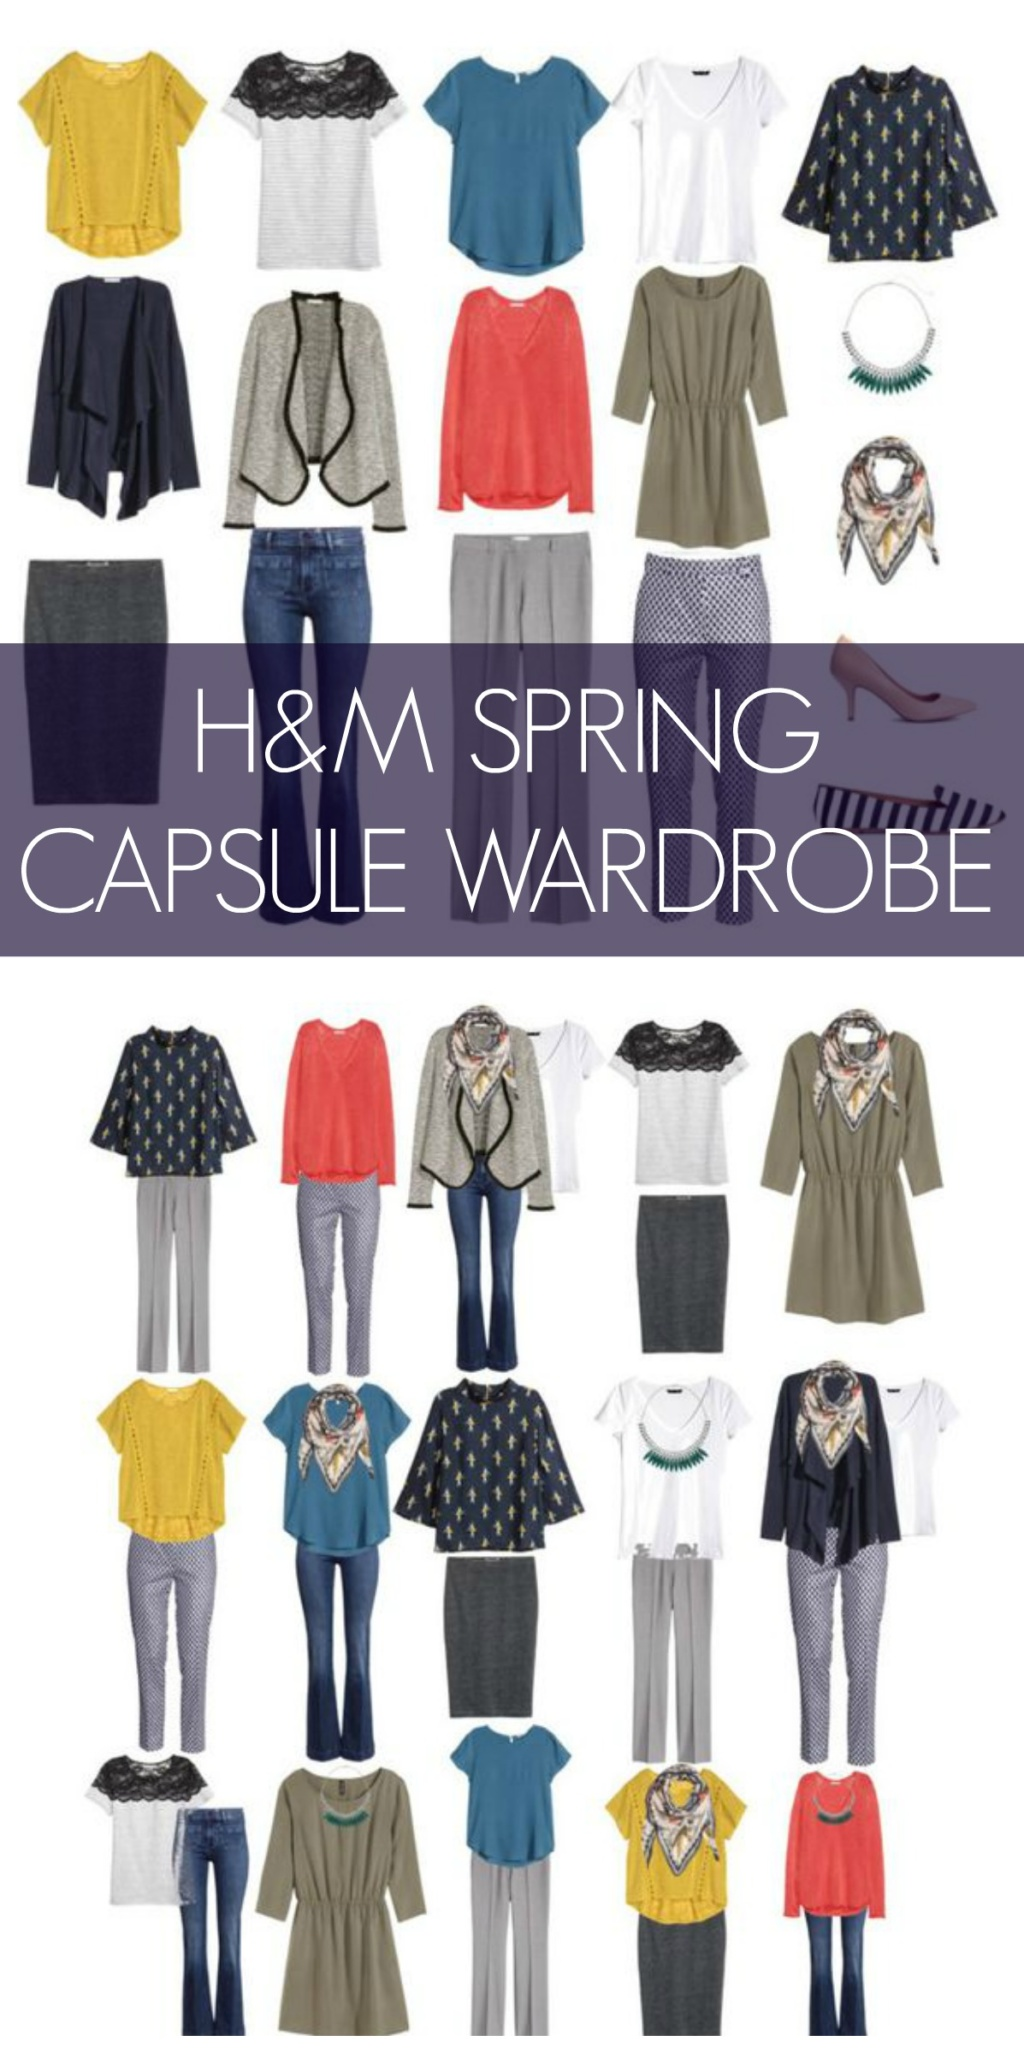 Spring Capsule Wardrobe From H&M